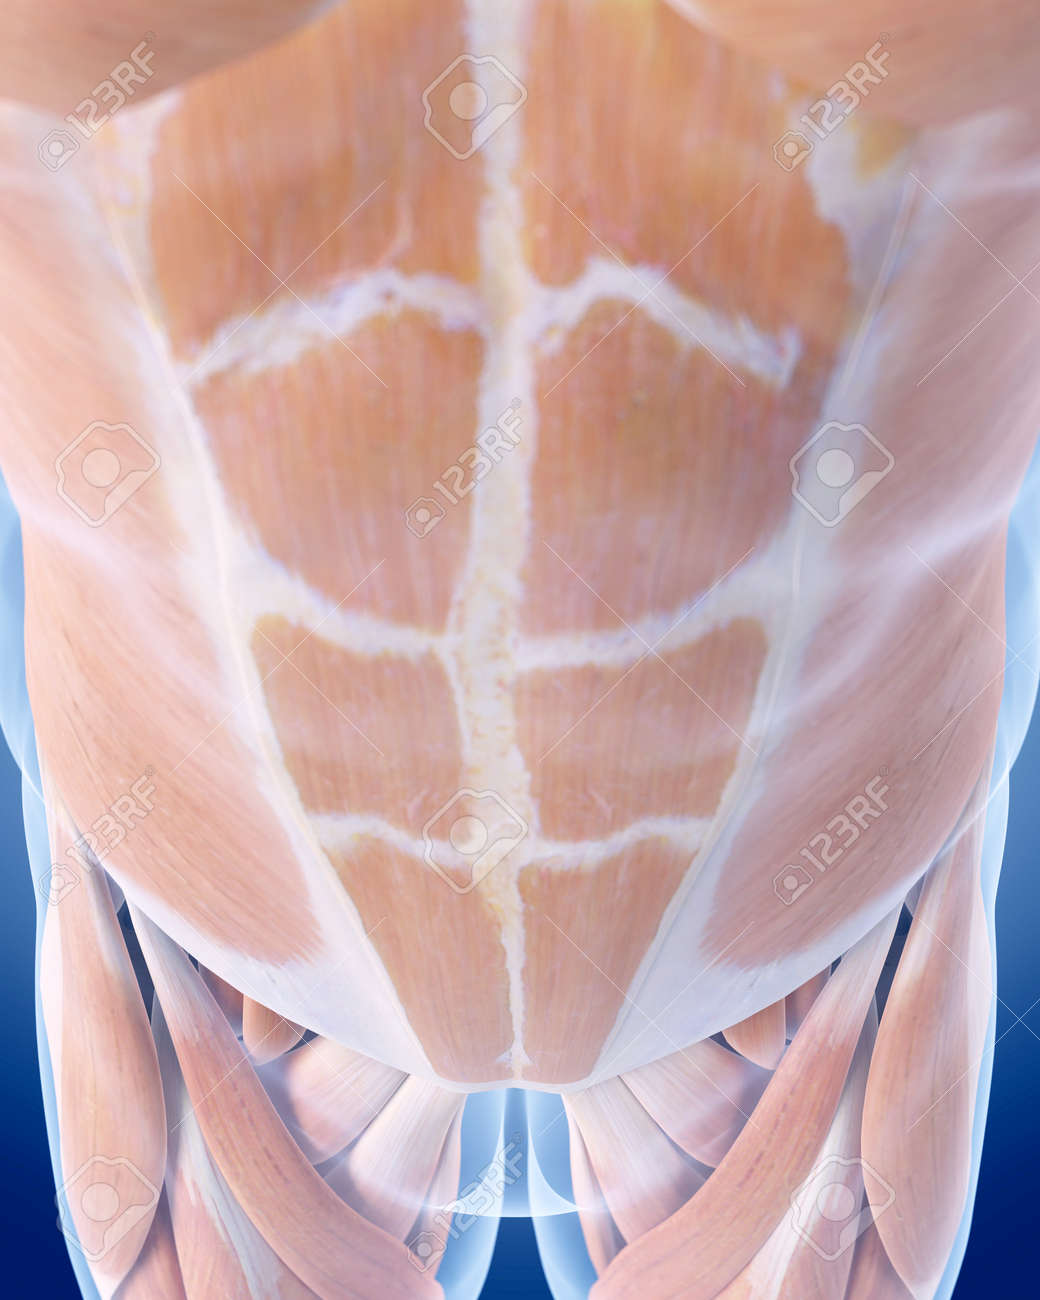 Medically Accurate Illustration Of The Abdominal Muscles Stock Photo